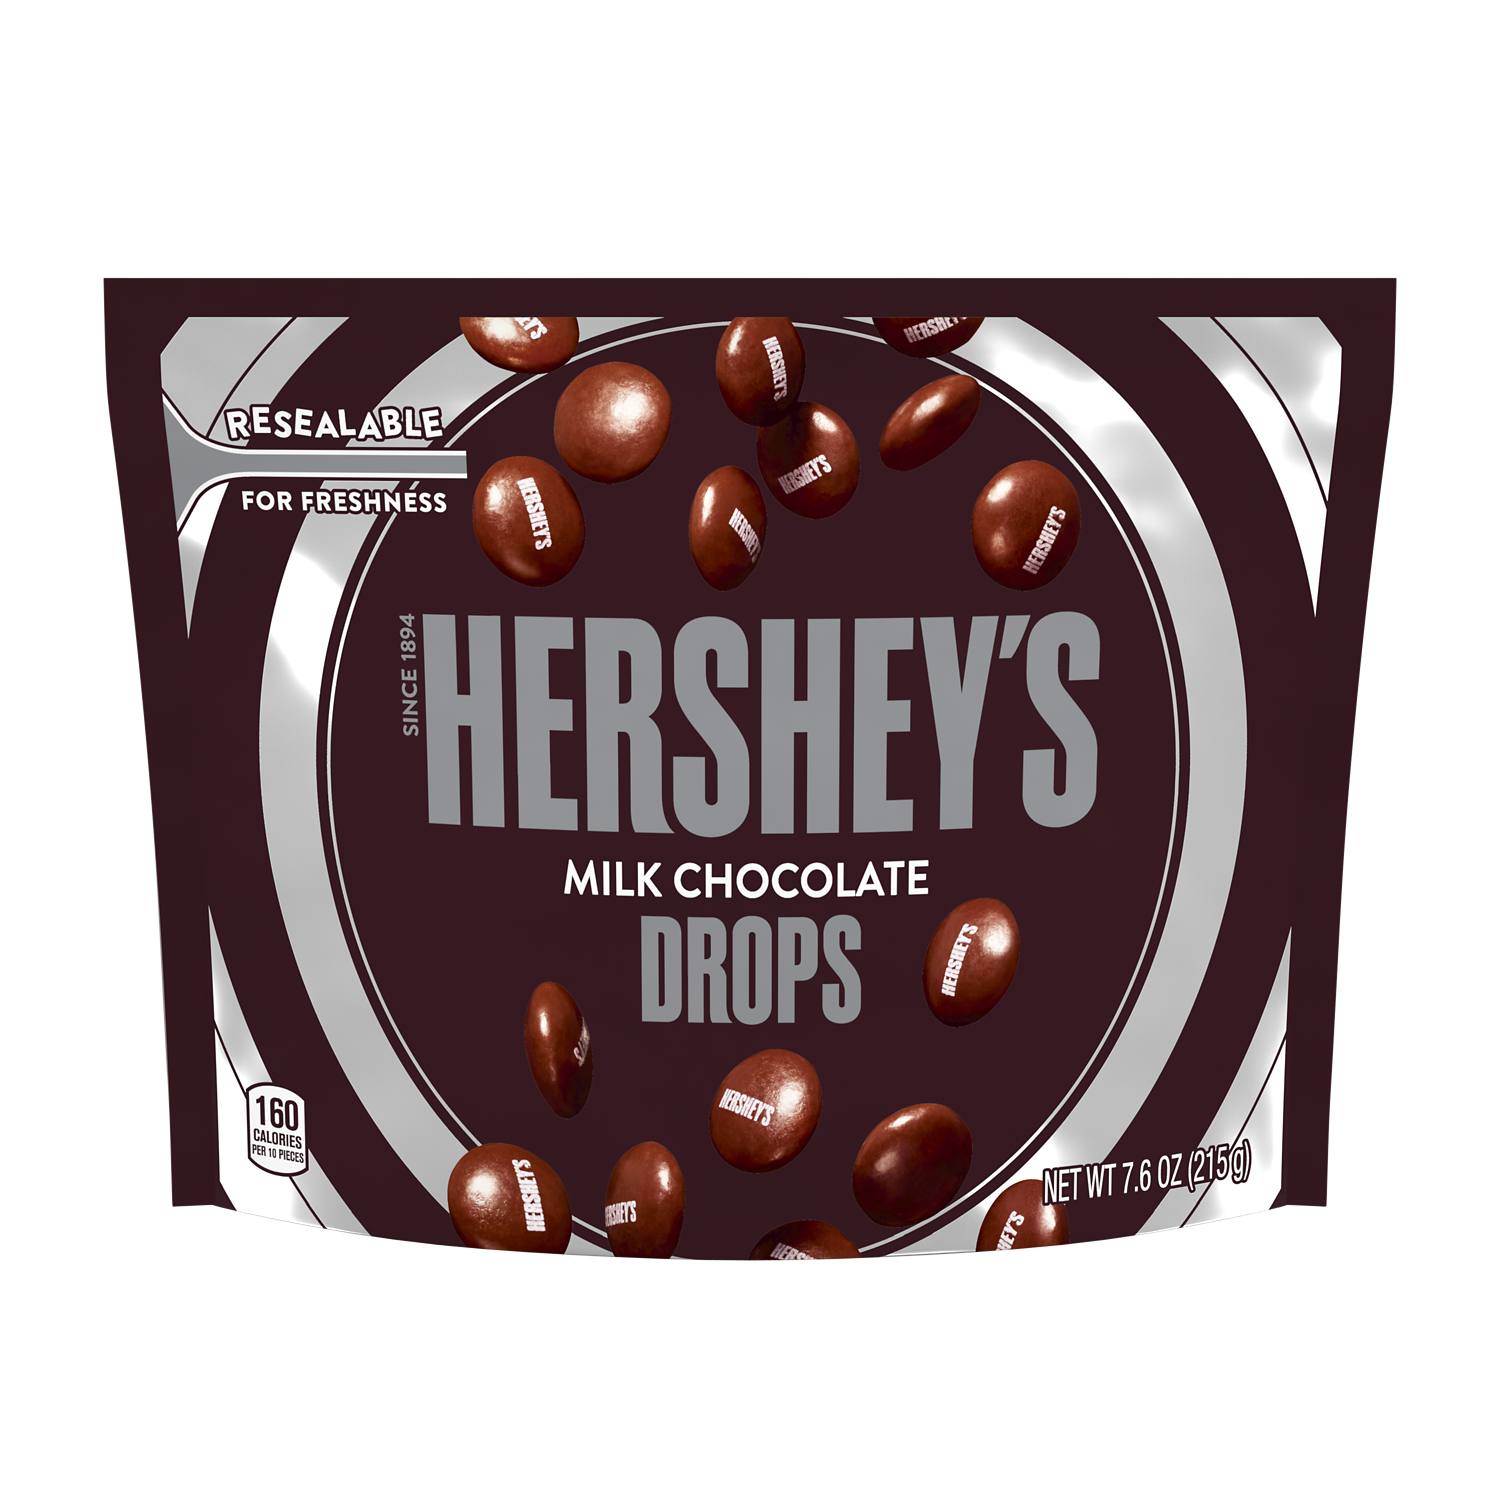 HERSHEY'S DROPS Milk Chocolate Candy, 7.6 oz bag - Front of Package